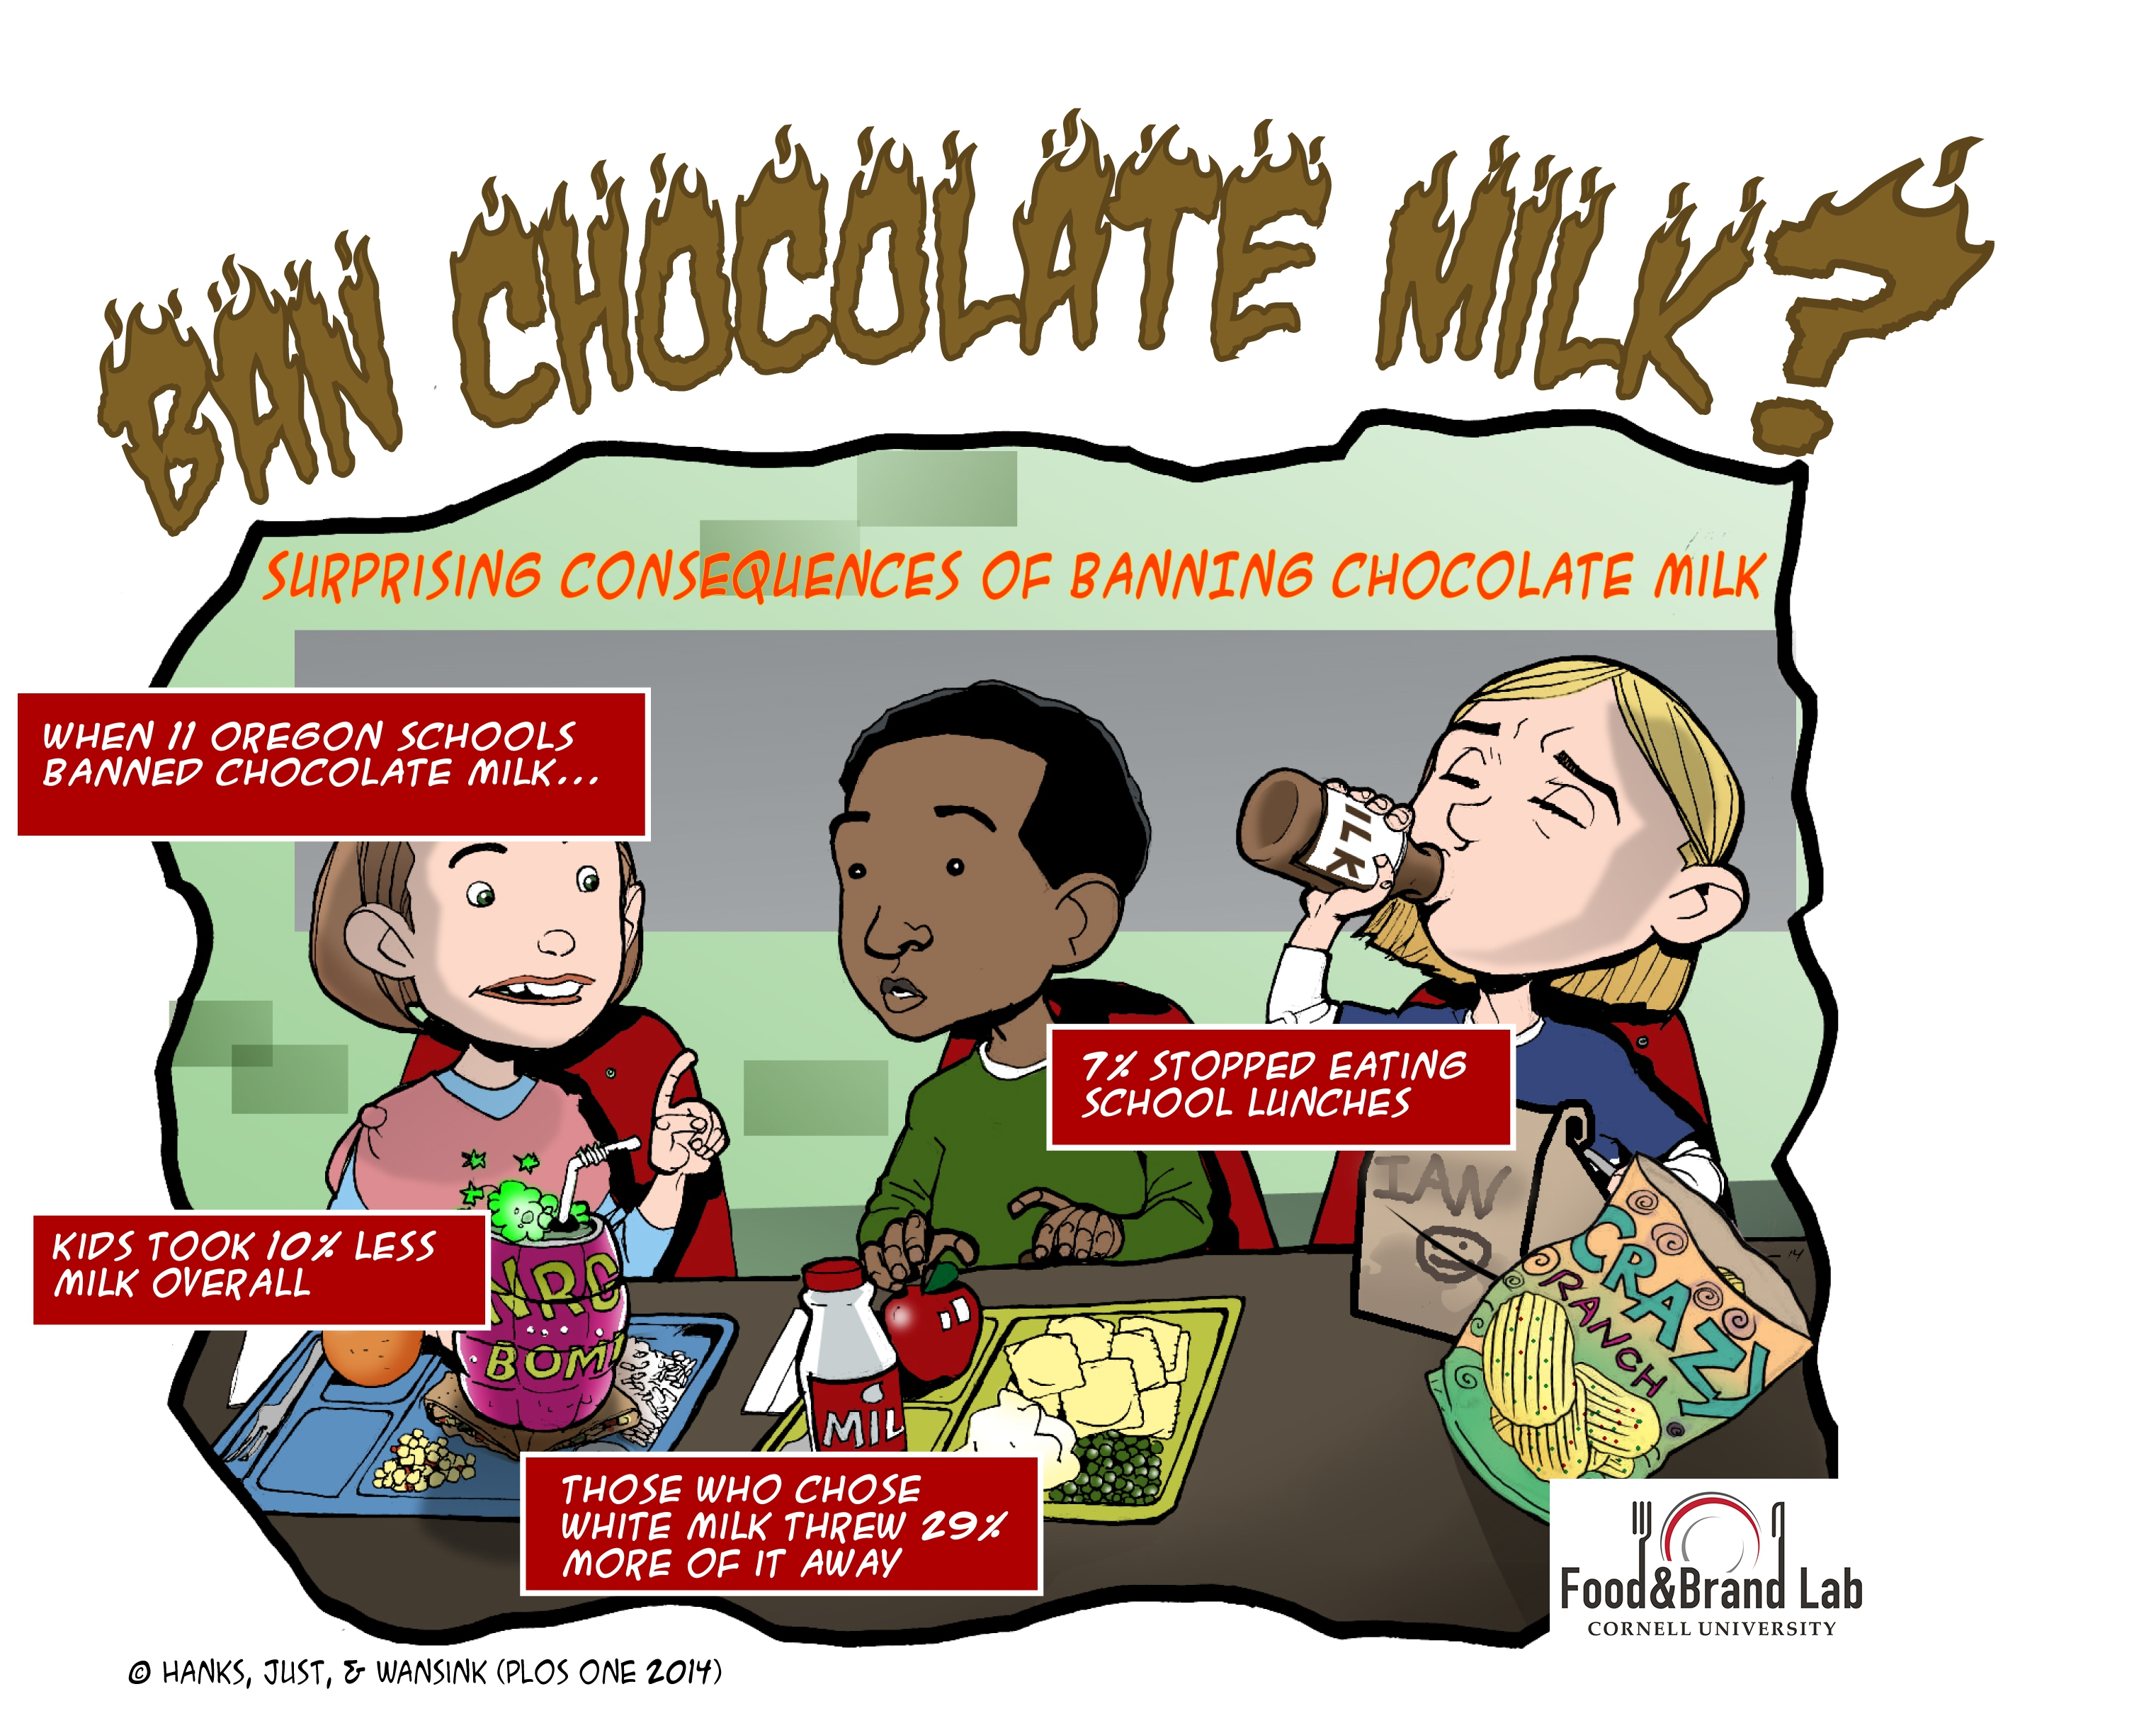 The Surprising Consequences of Banning Chocolate Milk.